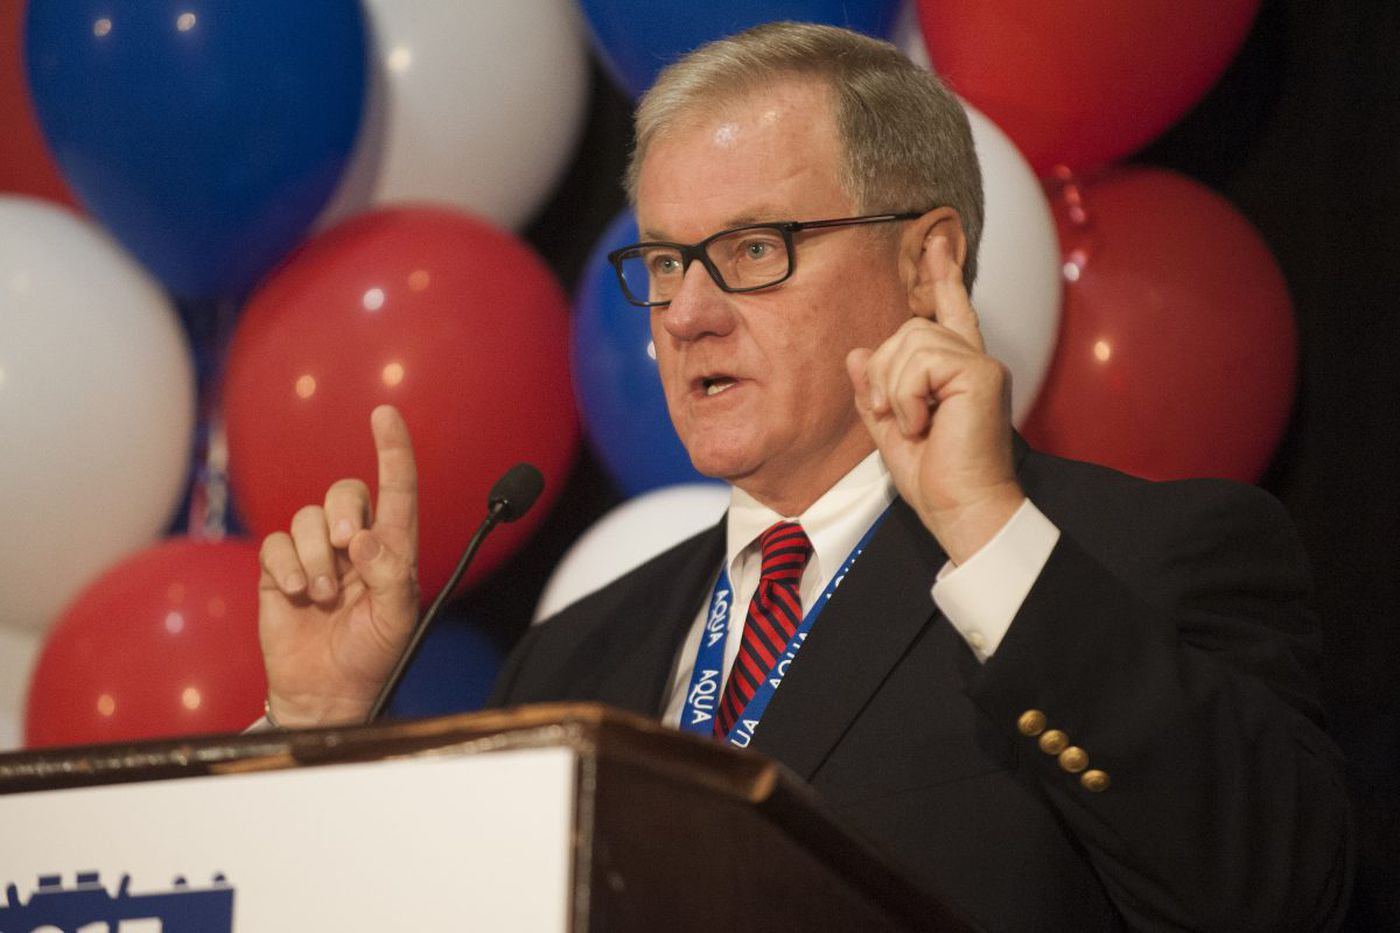 GOP candidate Scott Wagner spent $1M on private jets he co-owns | Clout